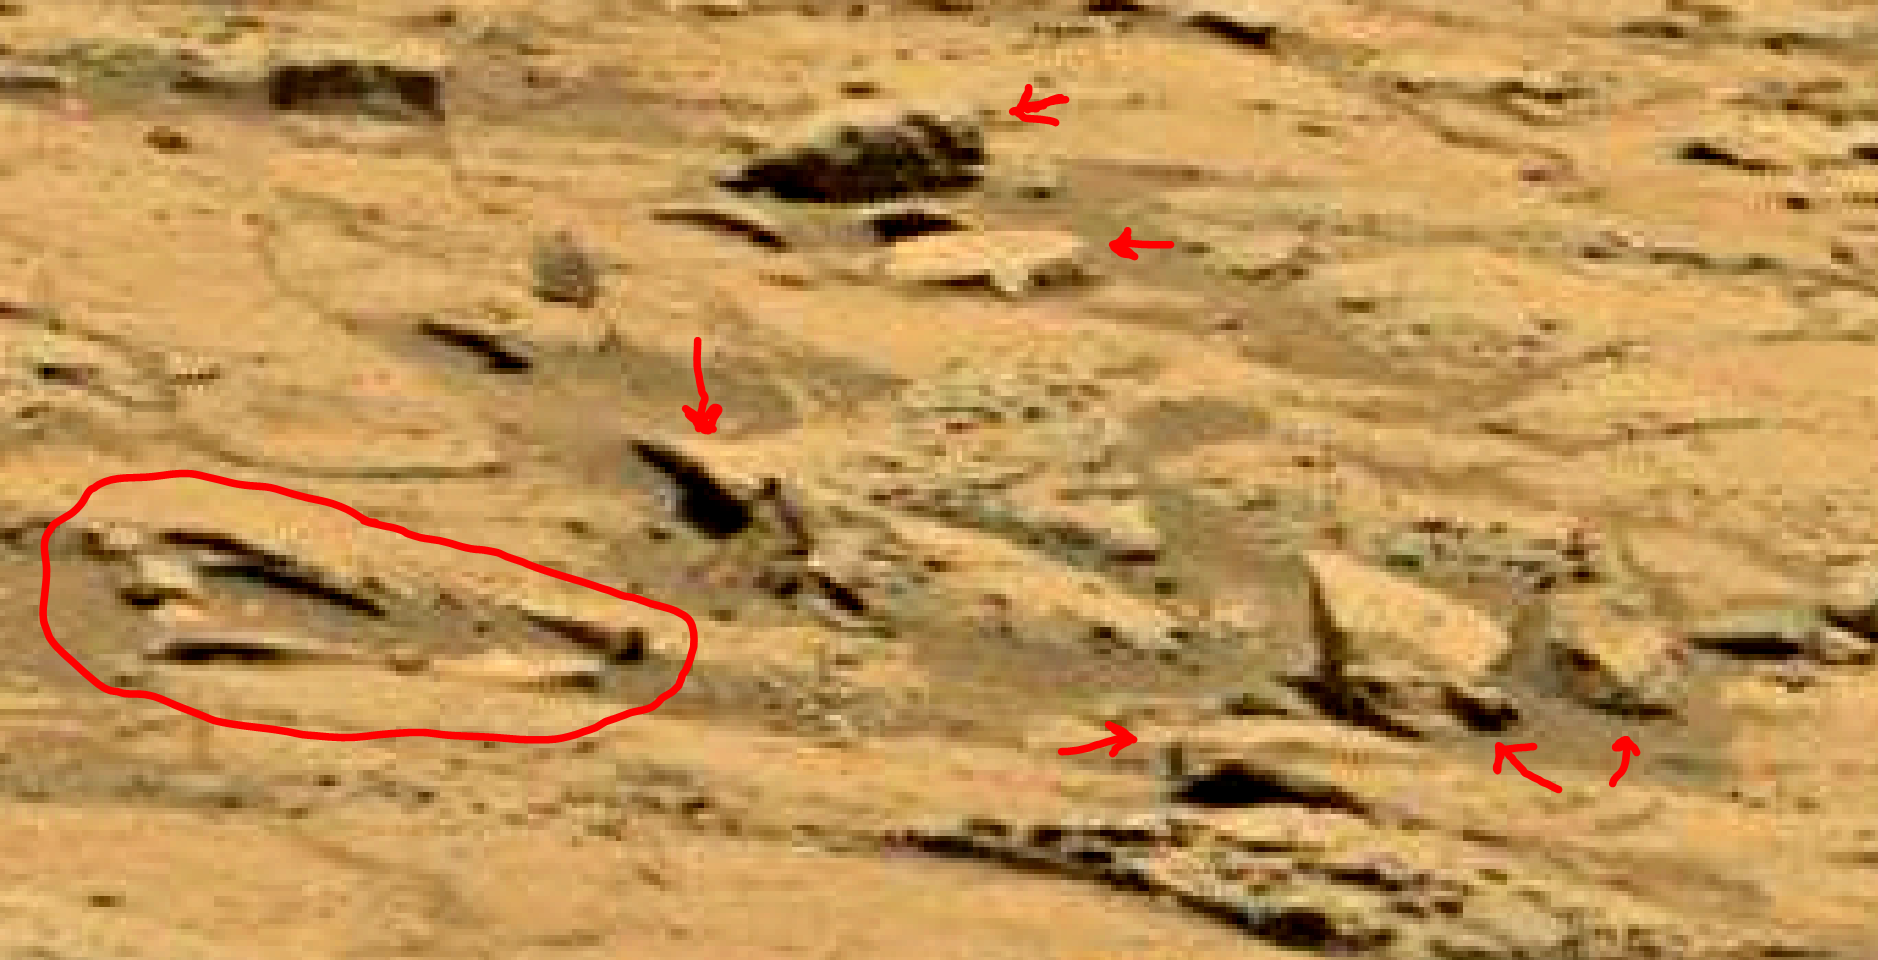 mars sol 1353 anomaly-artifacts 57 was life on mars